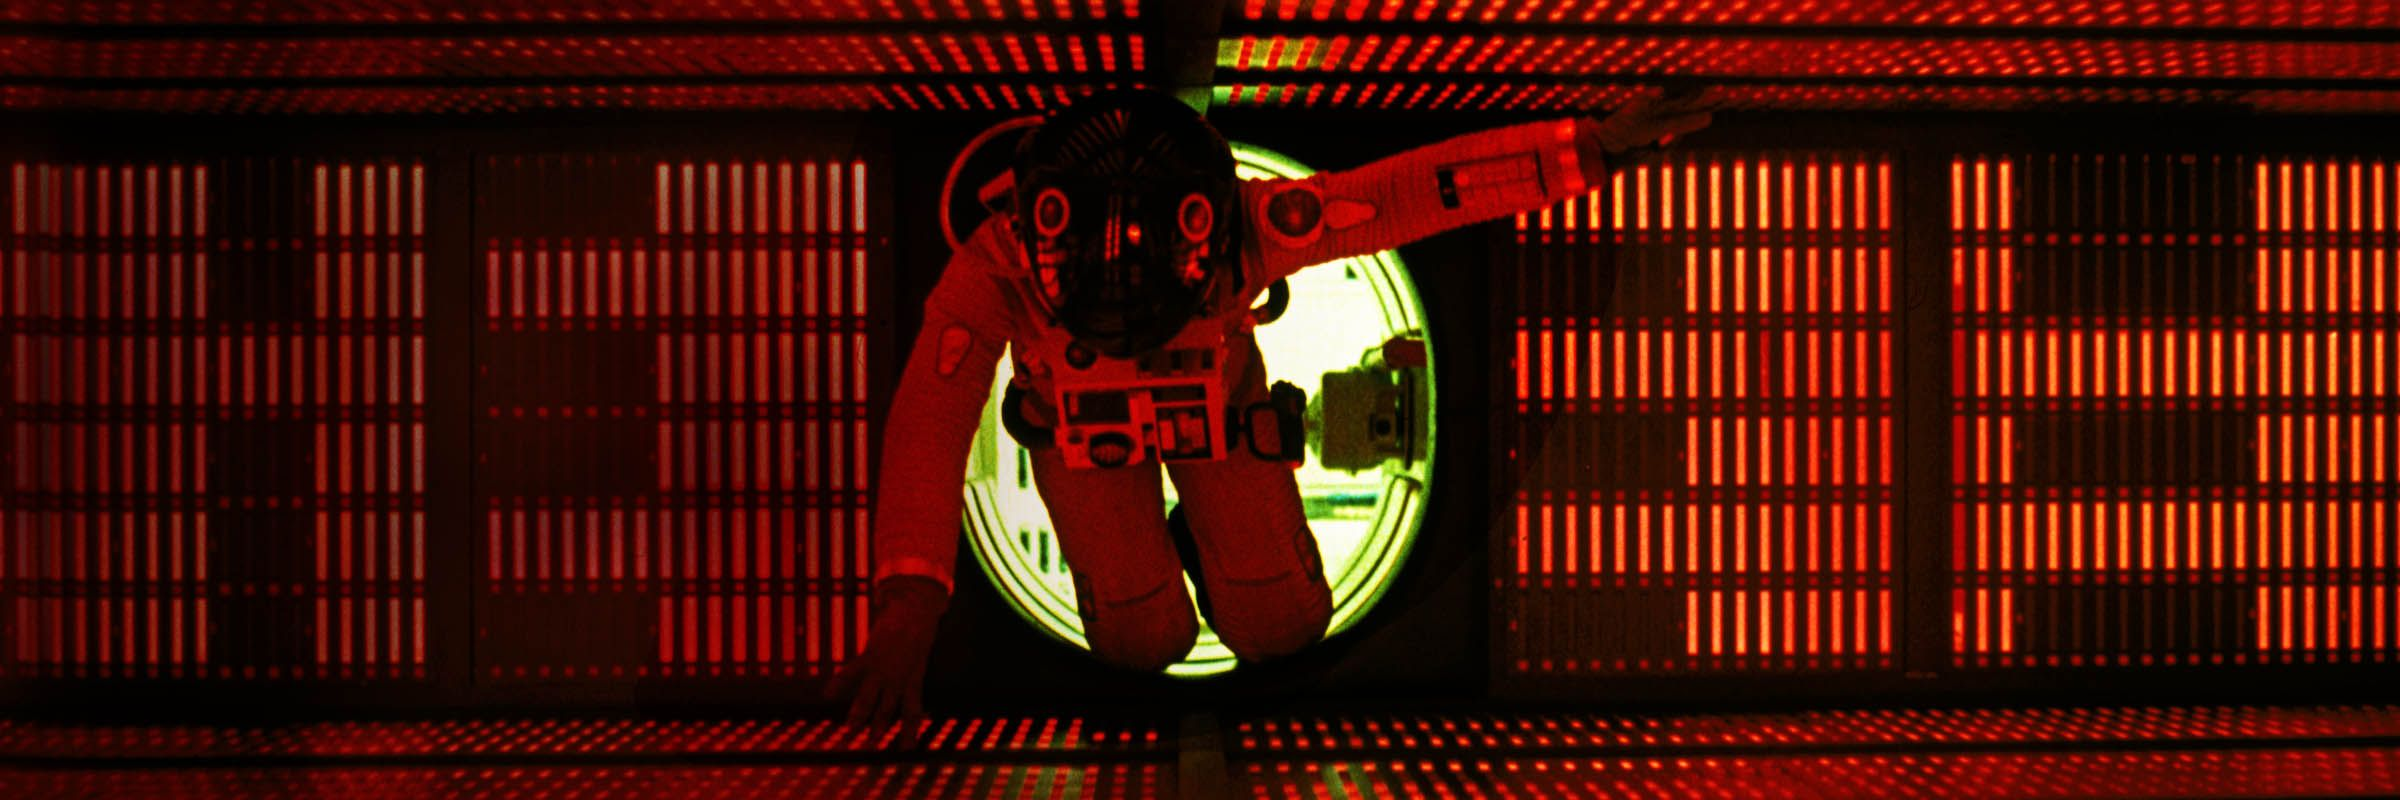 2001 A Space Odyssey Porn Video 2001: a space odyssey | full movie | movies anywhere